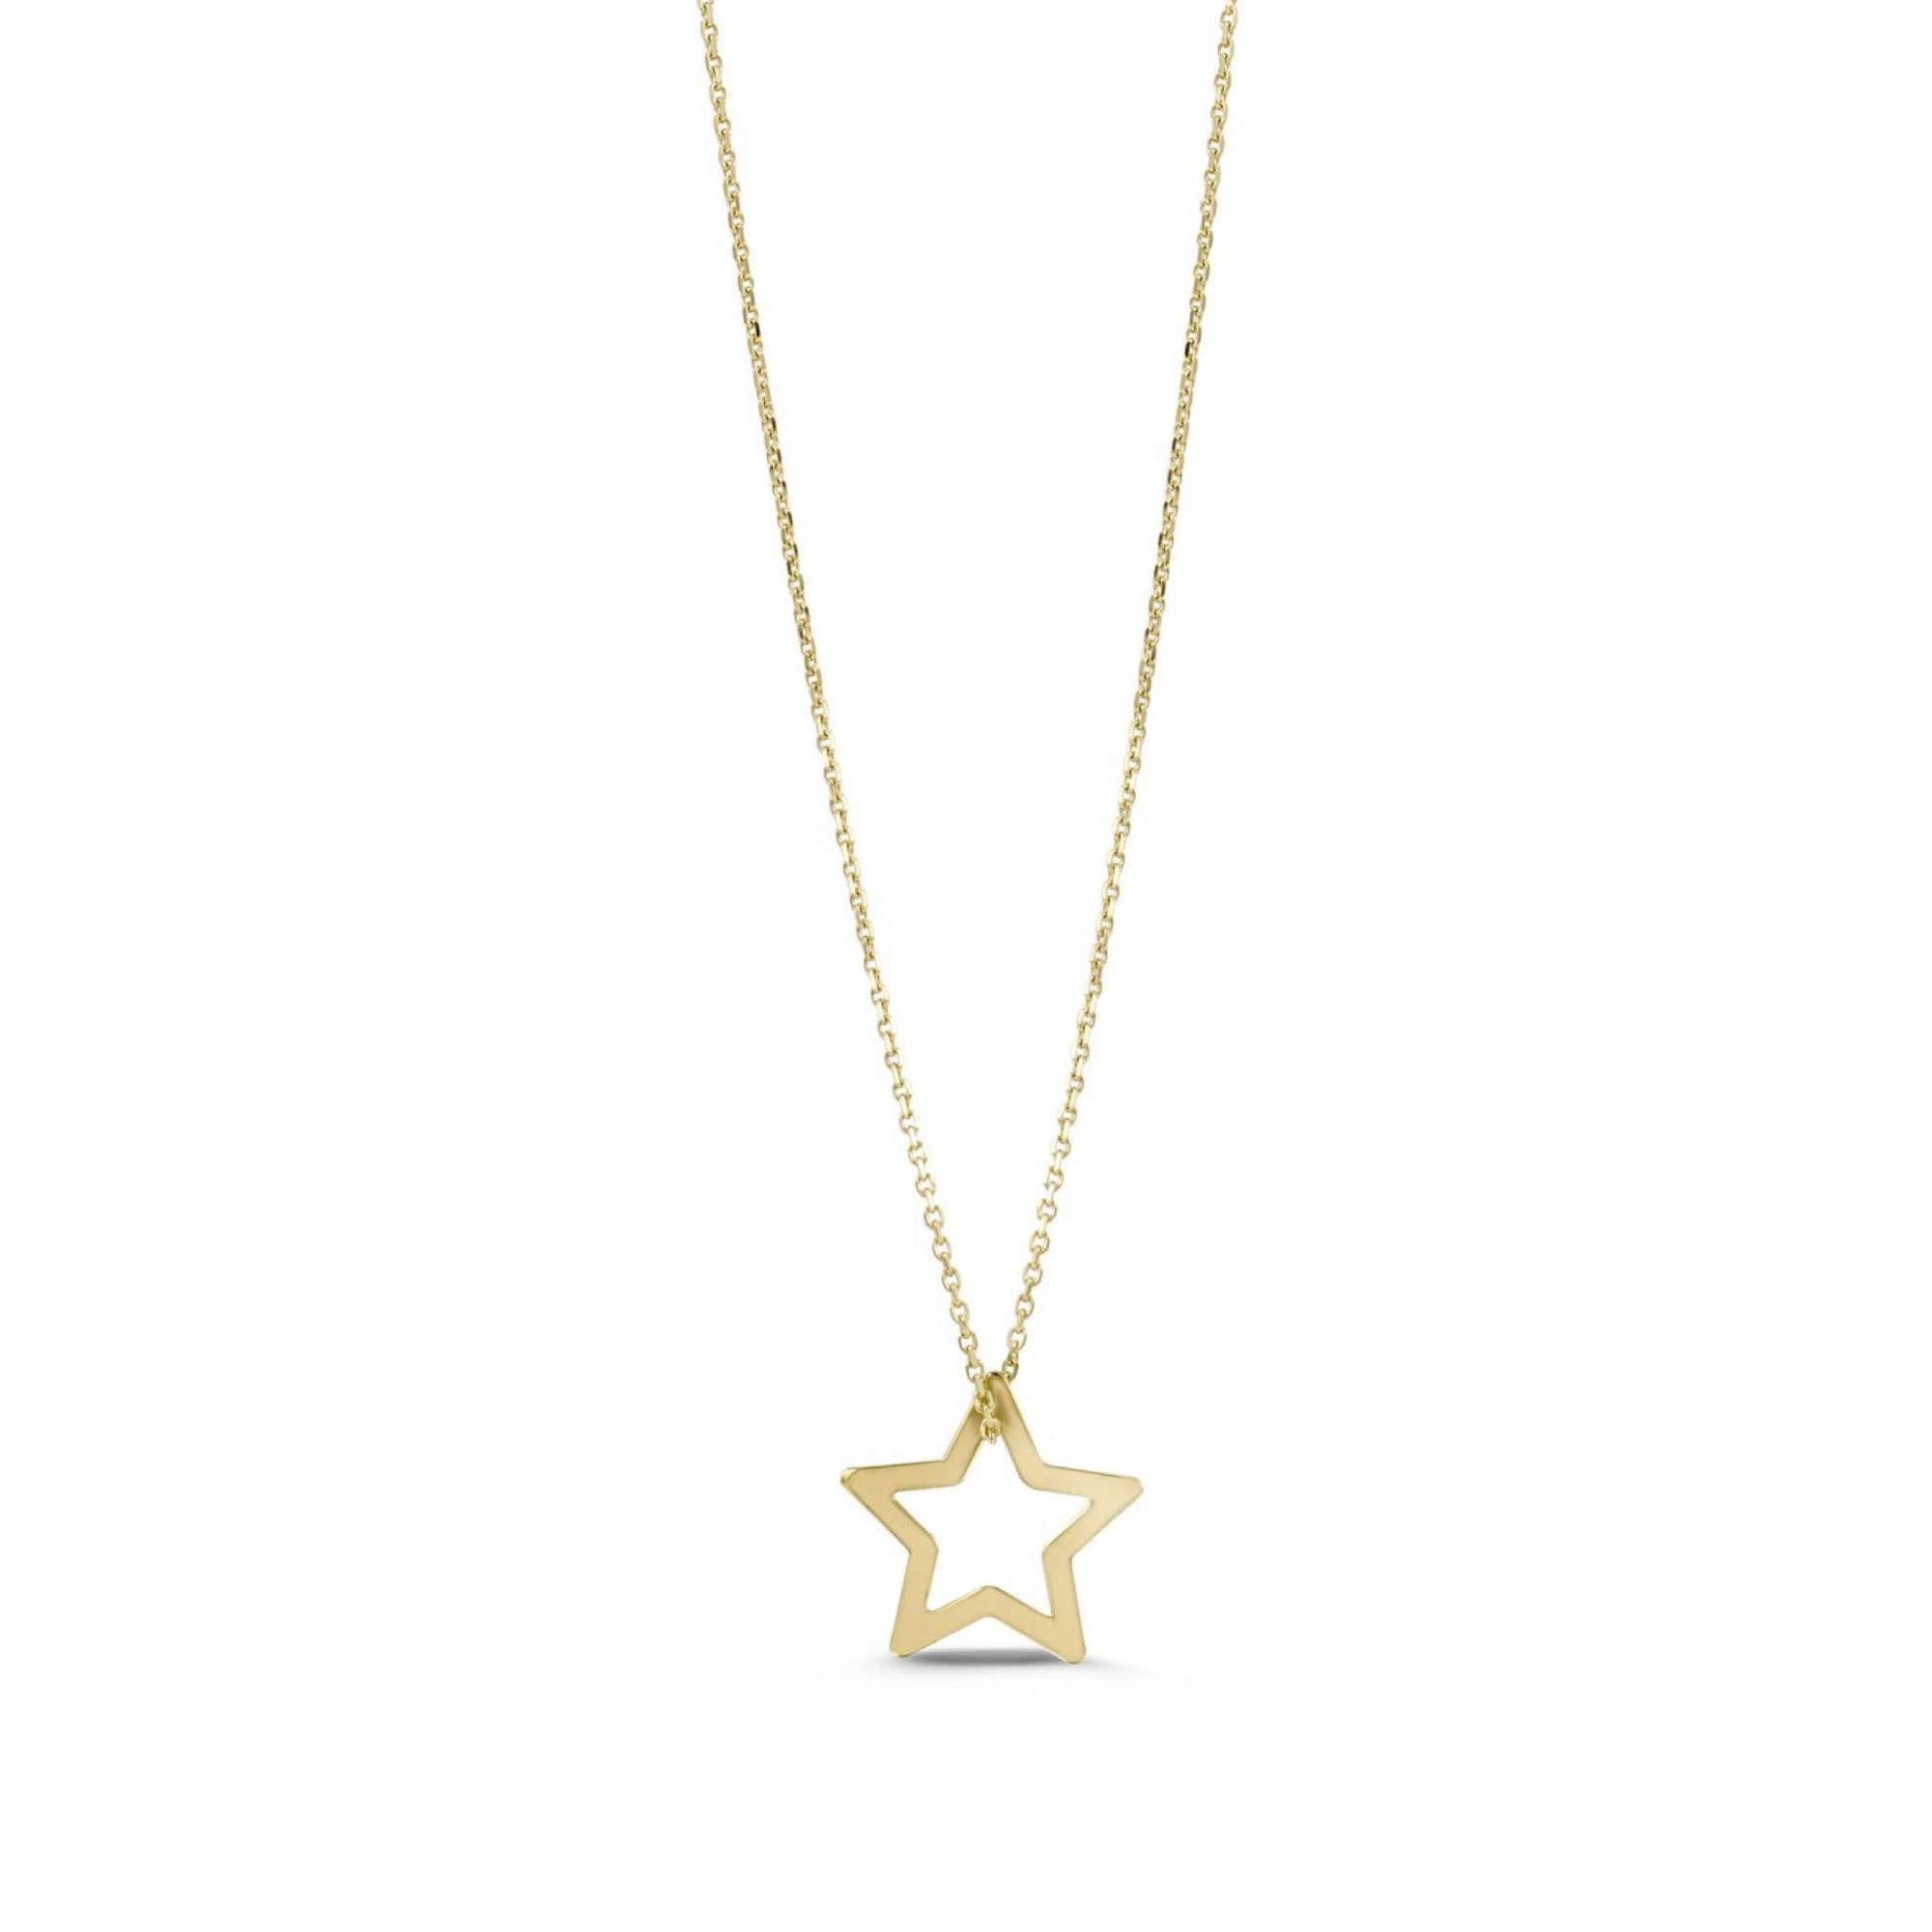 10K Yellow Gold Star Necklace at Arman's Jewellers